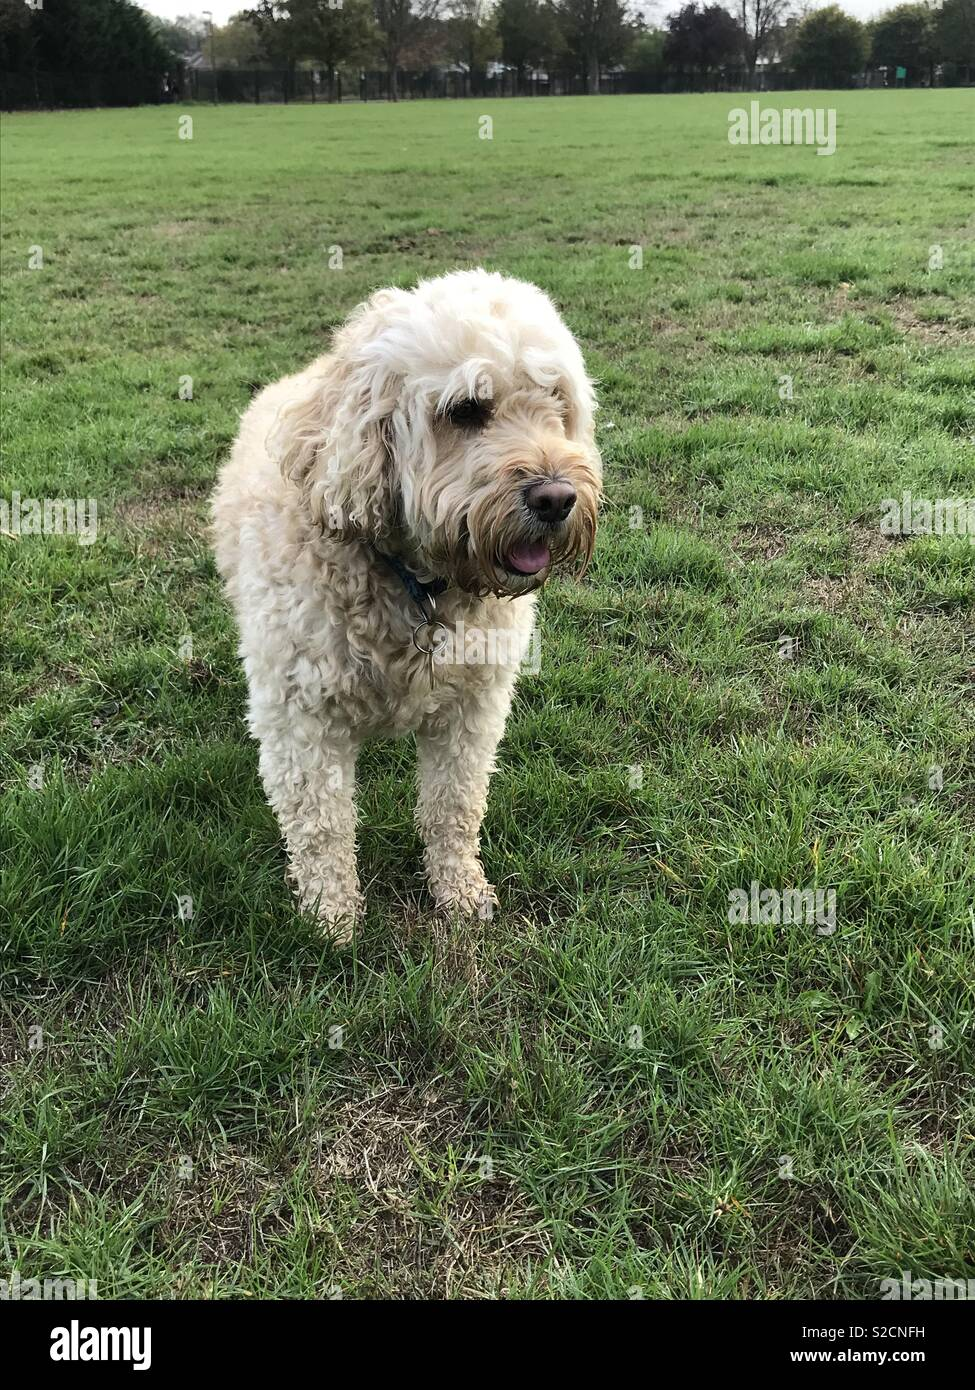 Flint the apricot cockapoo in the Park Stock Photo